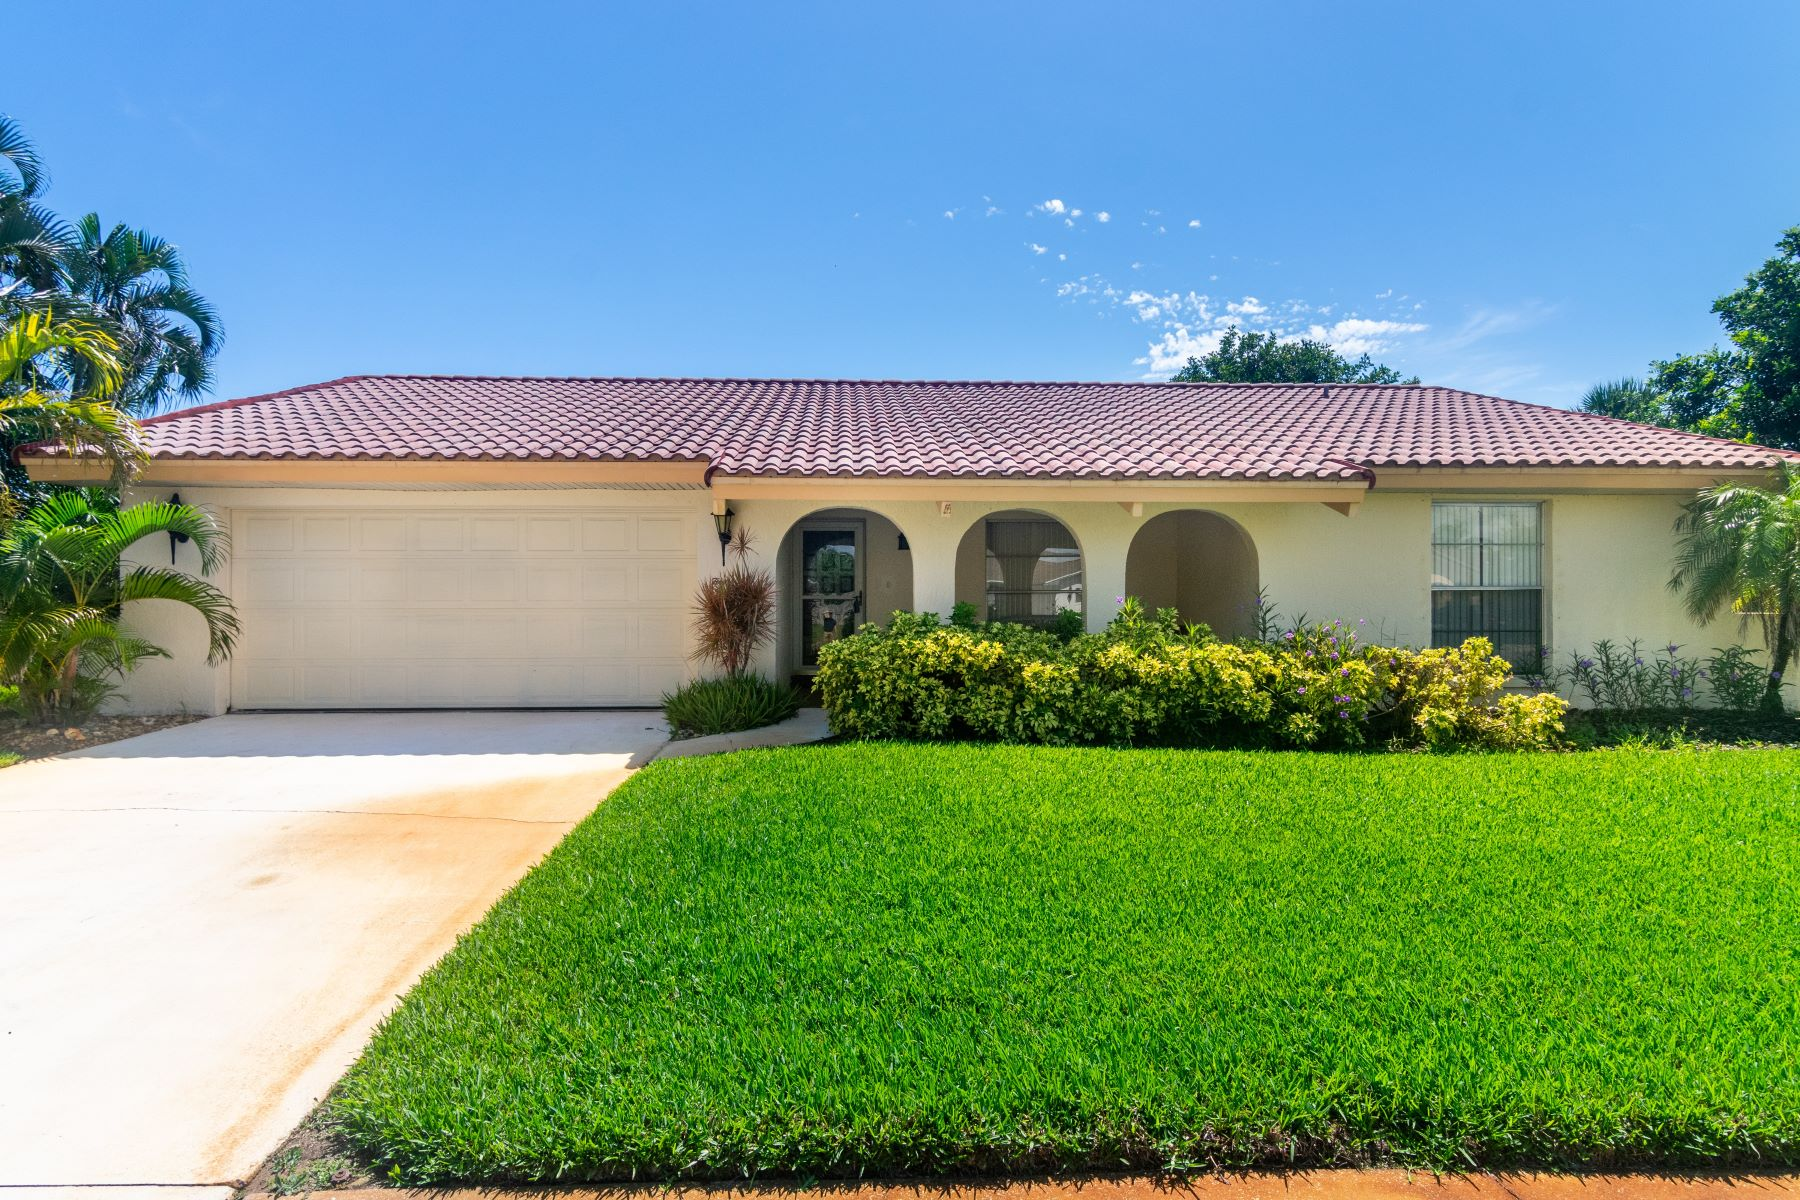 Single Family Homes for Sale at 535 Temple Street, Satellite Beach, FL 535 Temple Street Satellite Beach, Florida 32937 United States